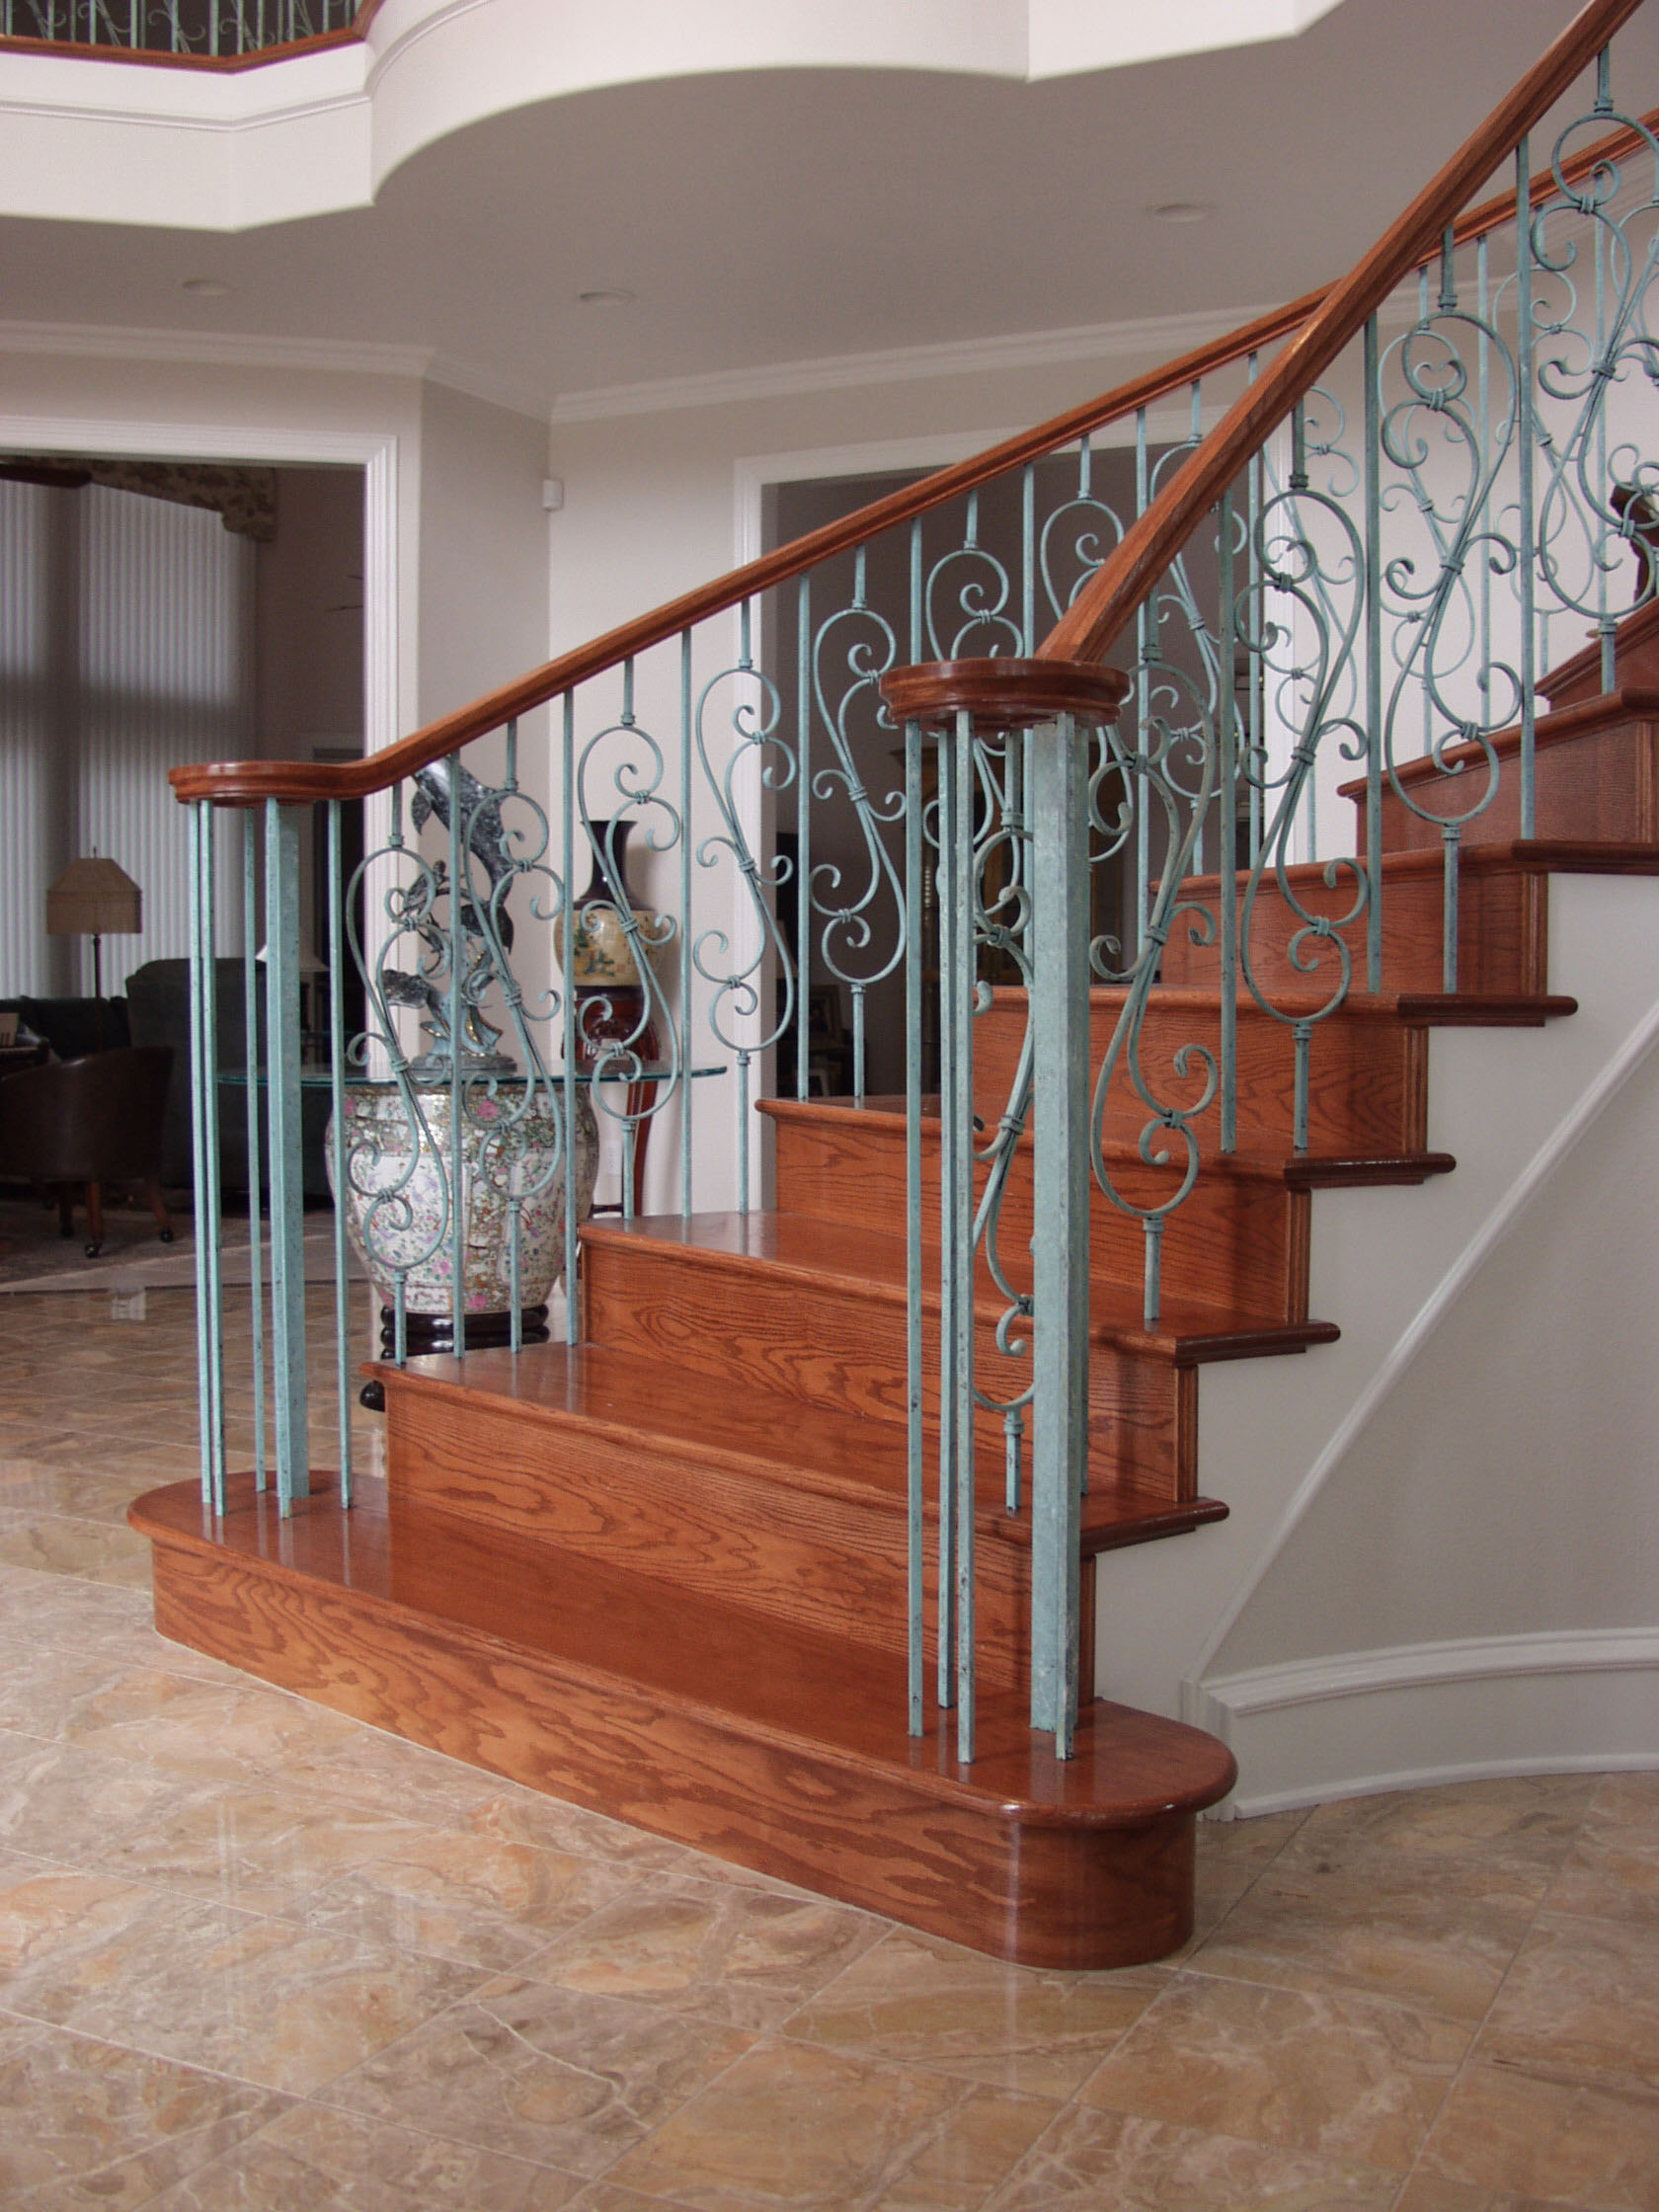 Versatile Staircase with Feathered S-Scrolls